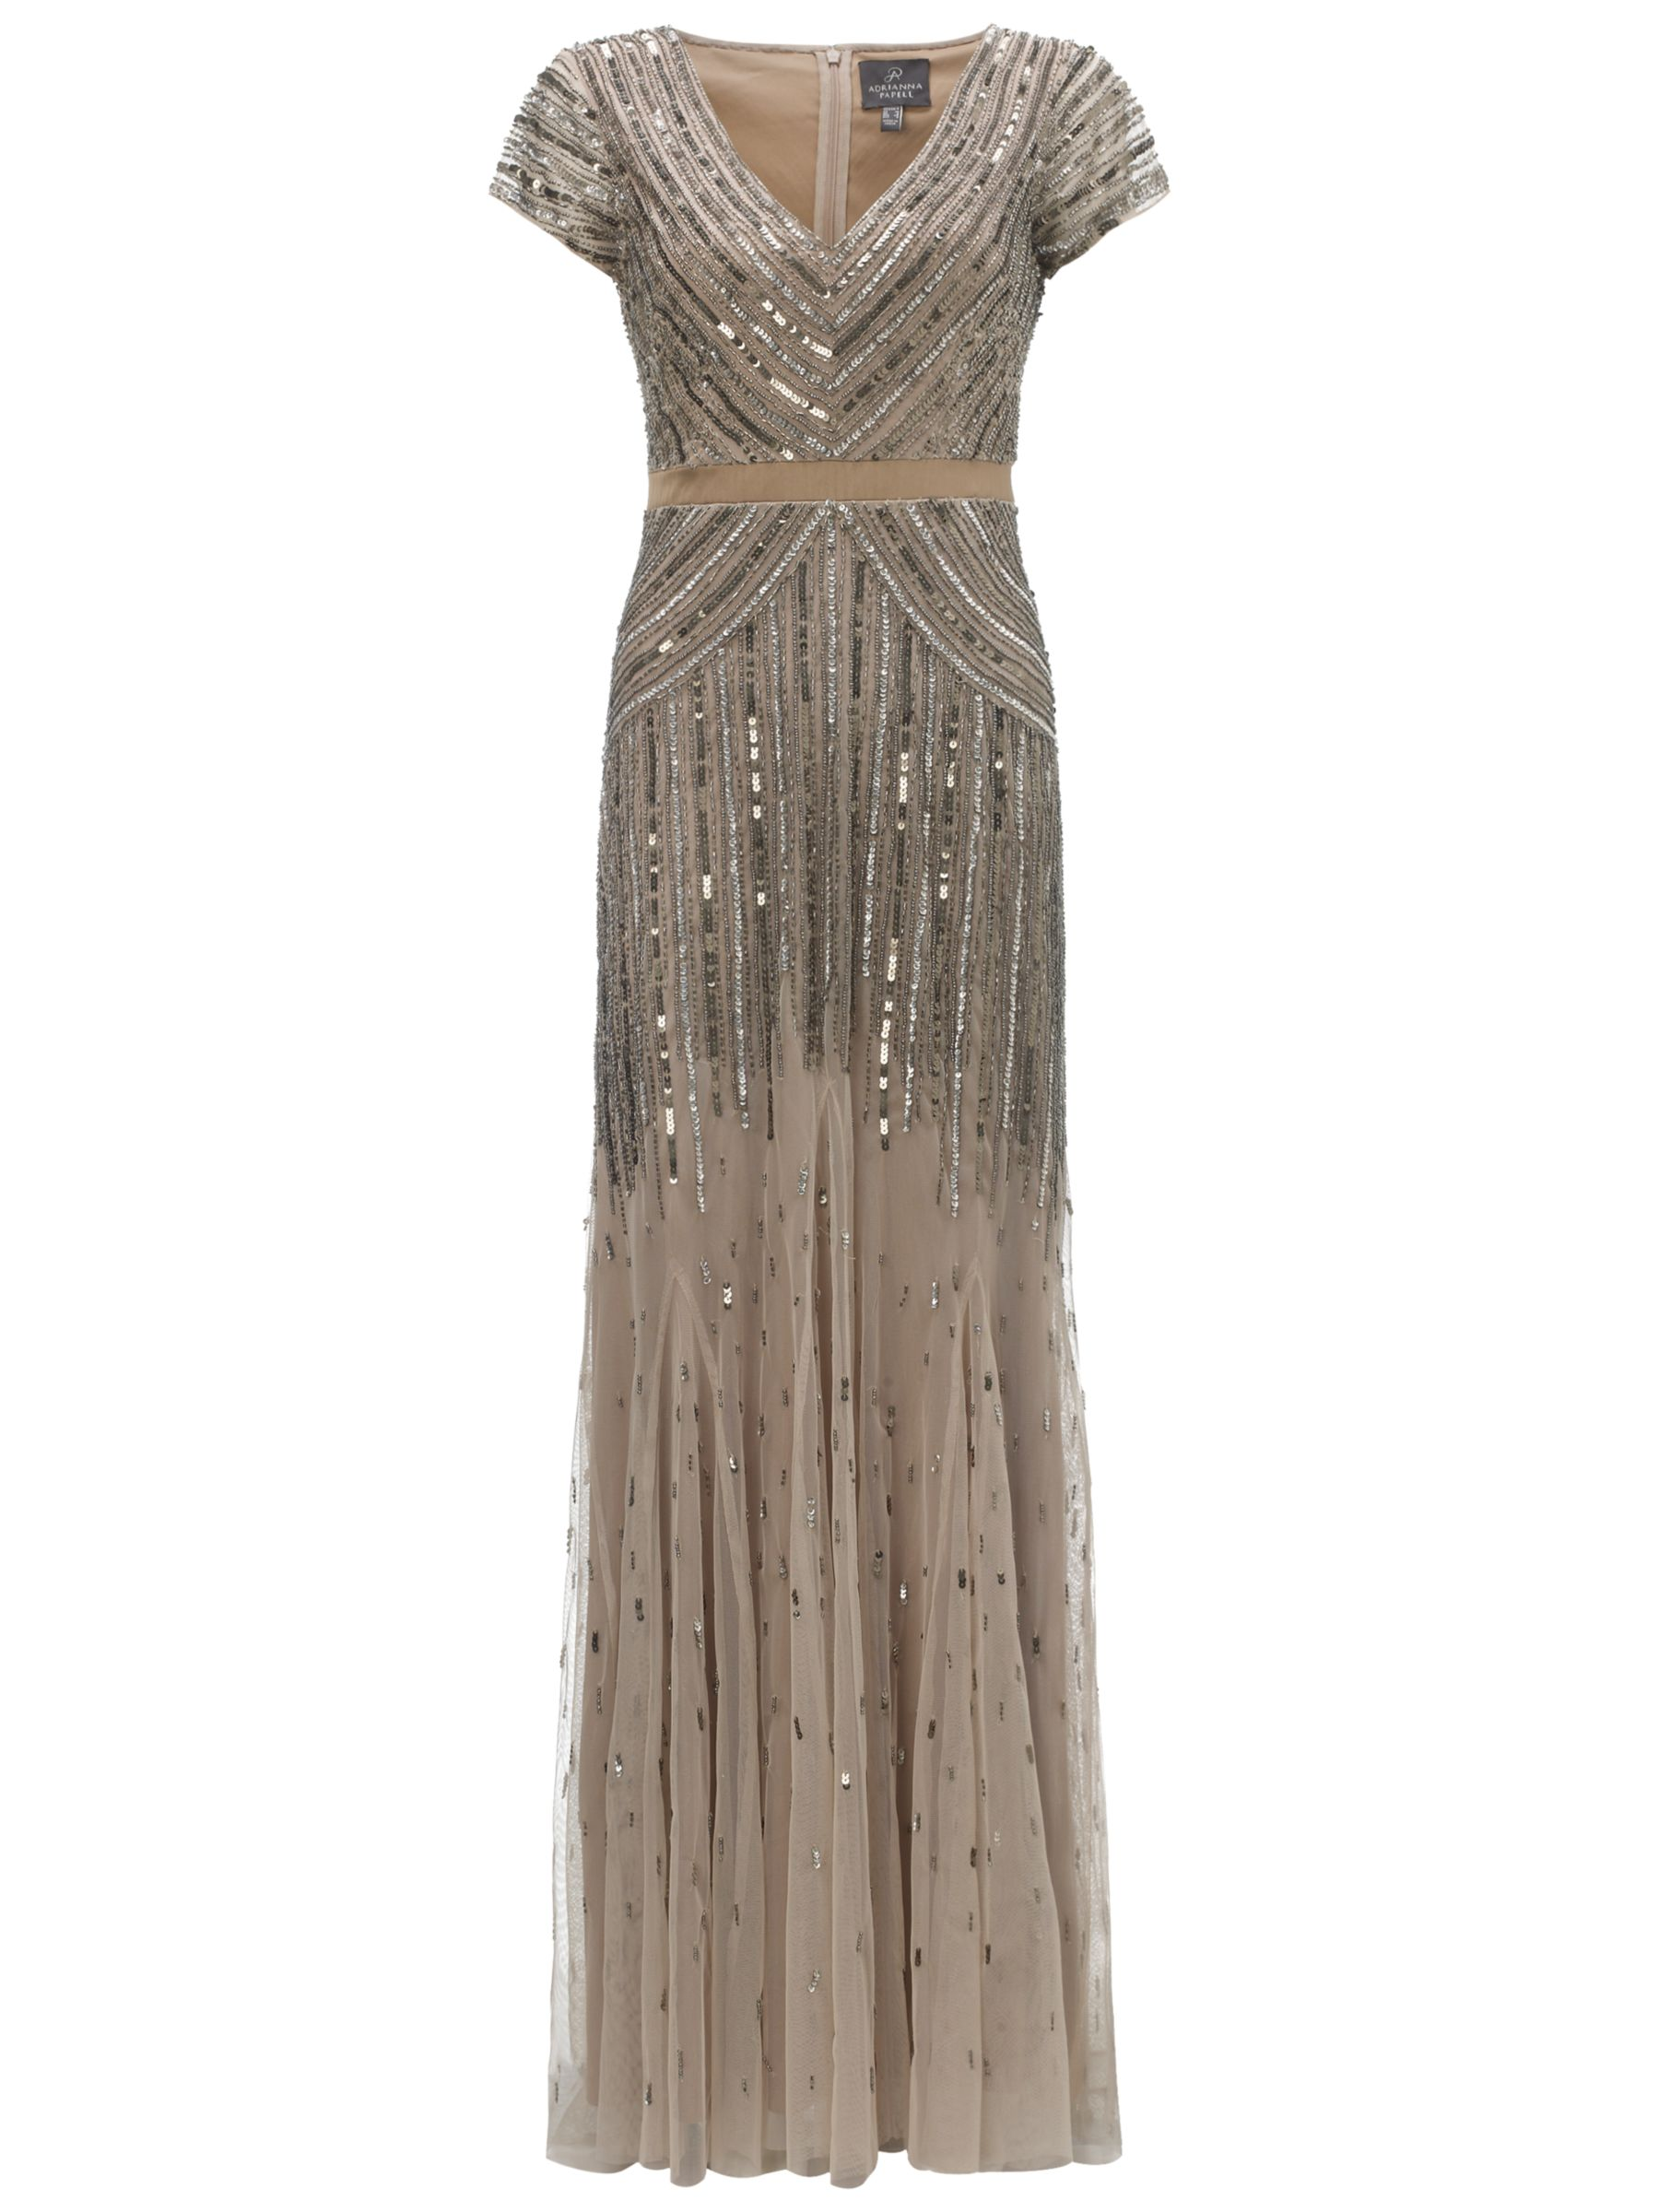 adrianna papell sequin maxi dress nude, adrianna, papell, sequin, maxi, dress, nude, adrianna papell, 14|10|20|18|16|12|8, women, plus size, gifts, wedding, wedding clothing, wedding dresses, special offers, womenswear offers, 30% off selected adrianna papell, brands a-k, womens dresses, party outfits, evening gowns, adult bridesmaids, edition magazine, embellishment, 1695533